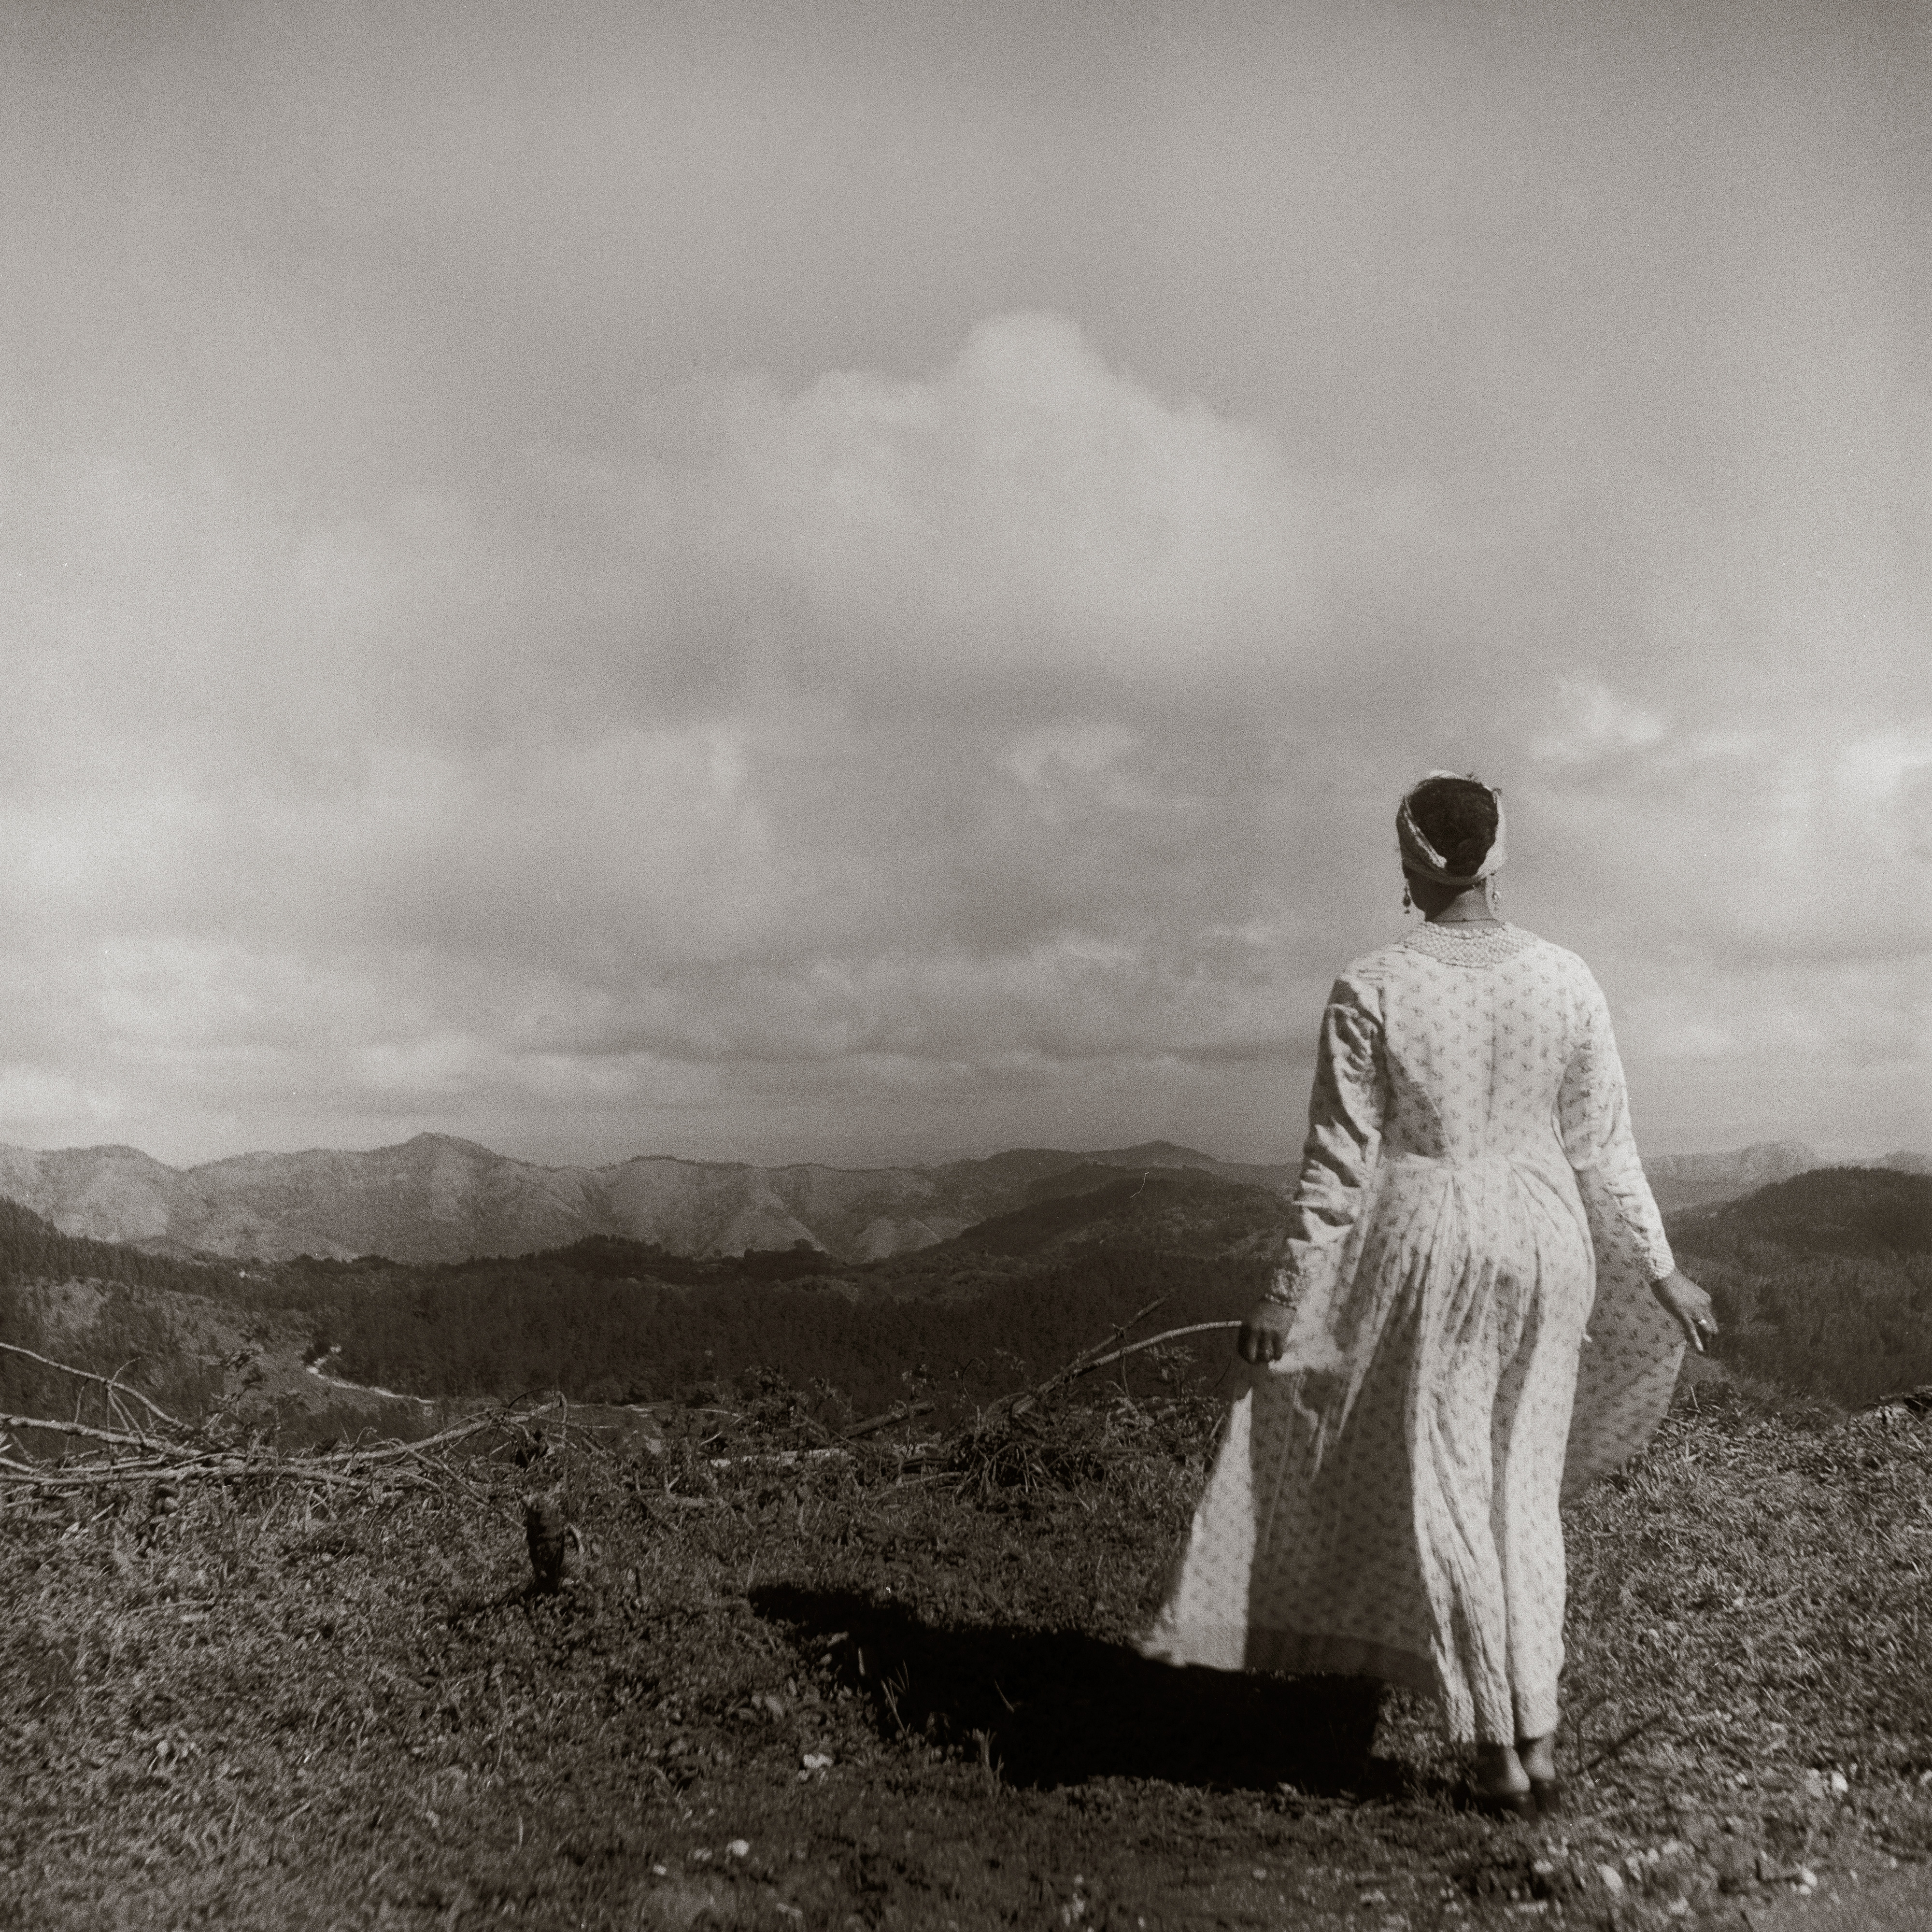 Galerie Barbara Thumm \ Carrie Mae Weems: In the Mountains of Santiago de Cuba (CMW-02-011) \ In the Mountains of Santiago de Cuba (2002)